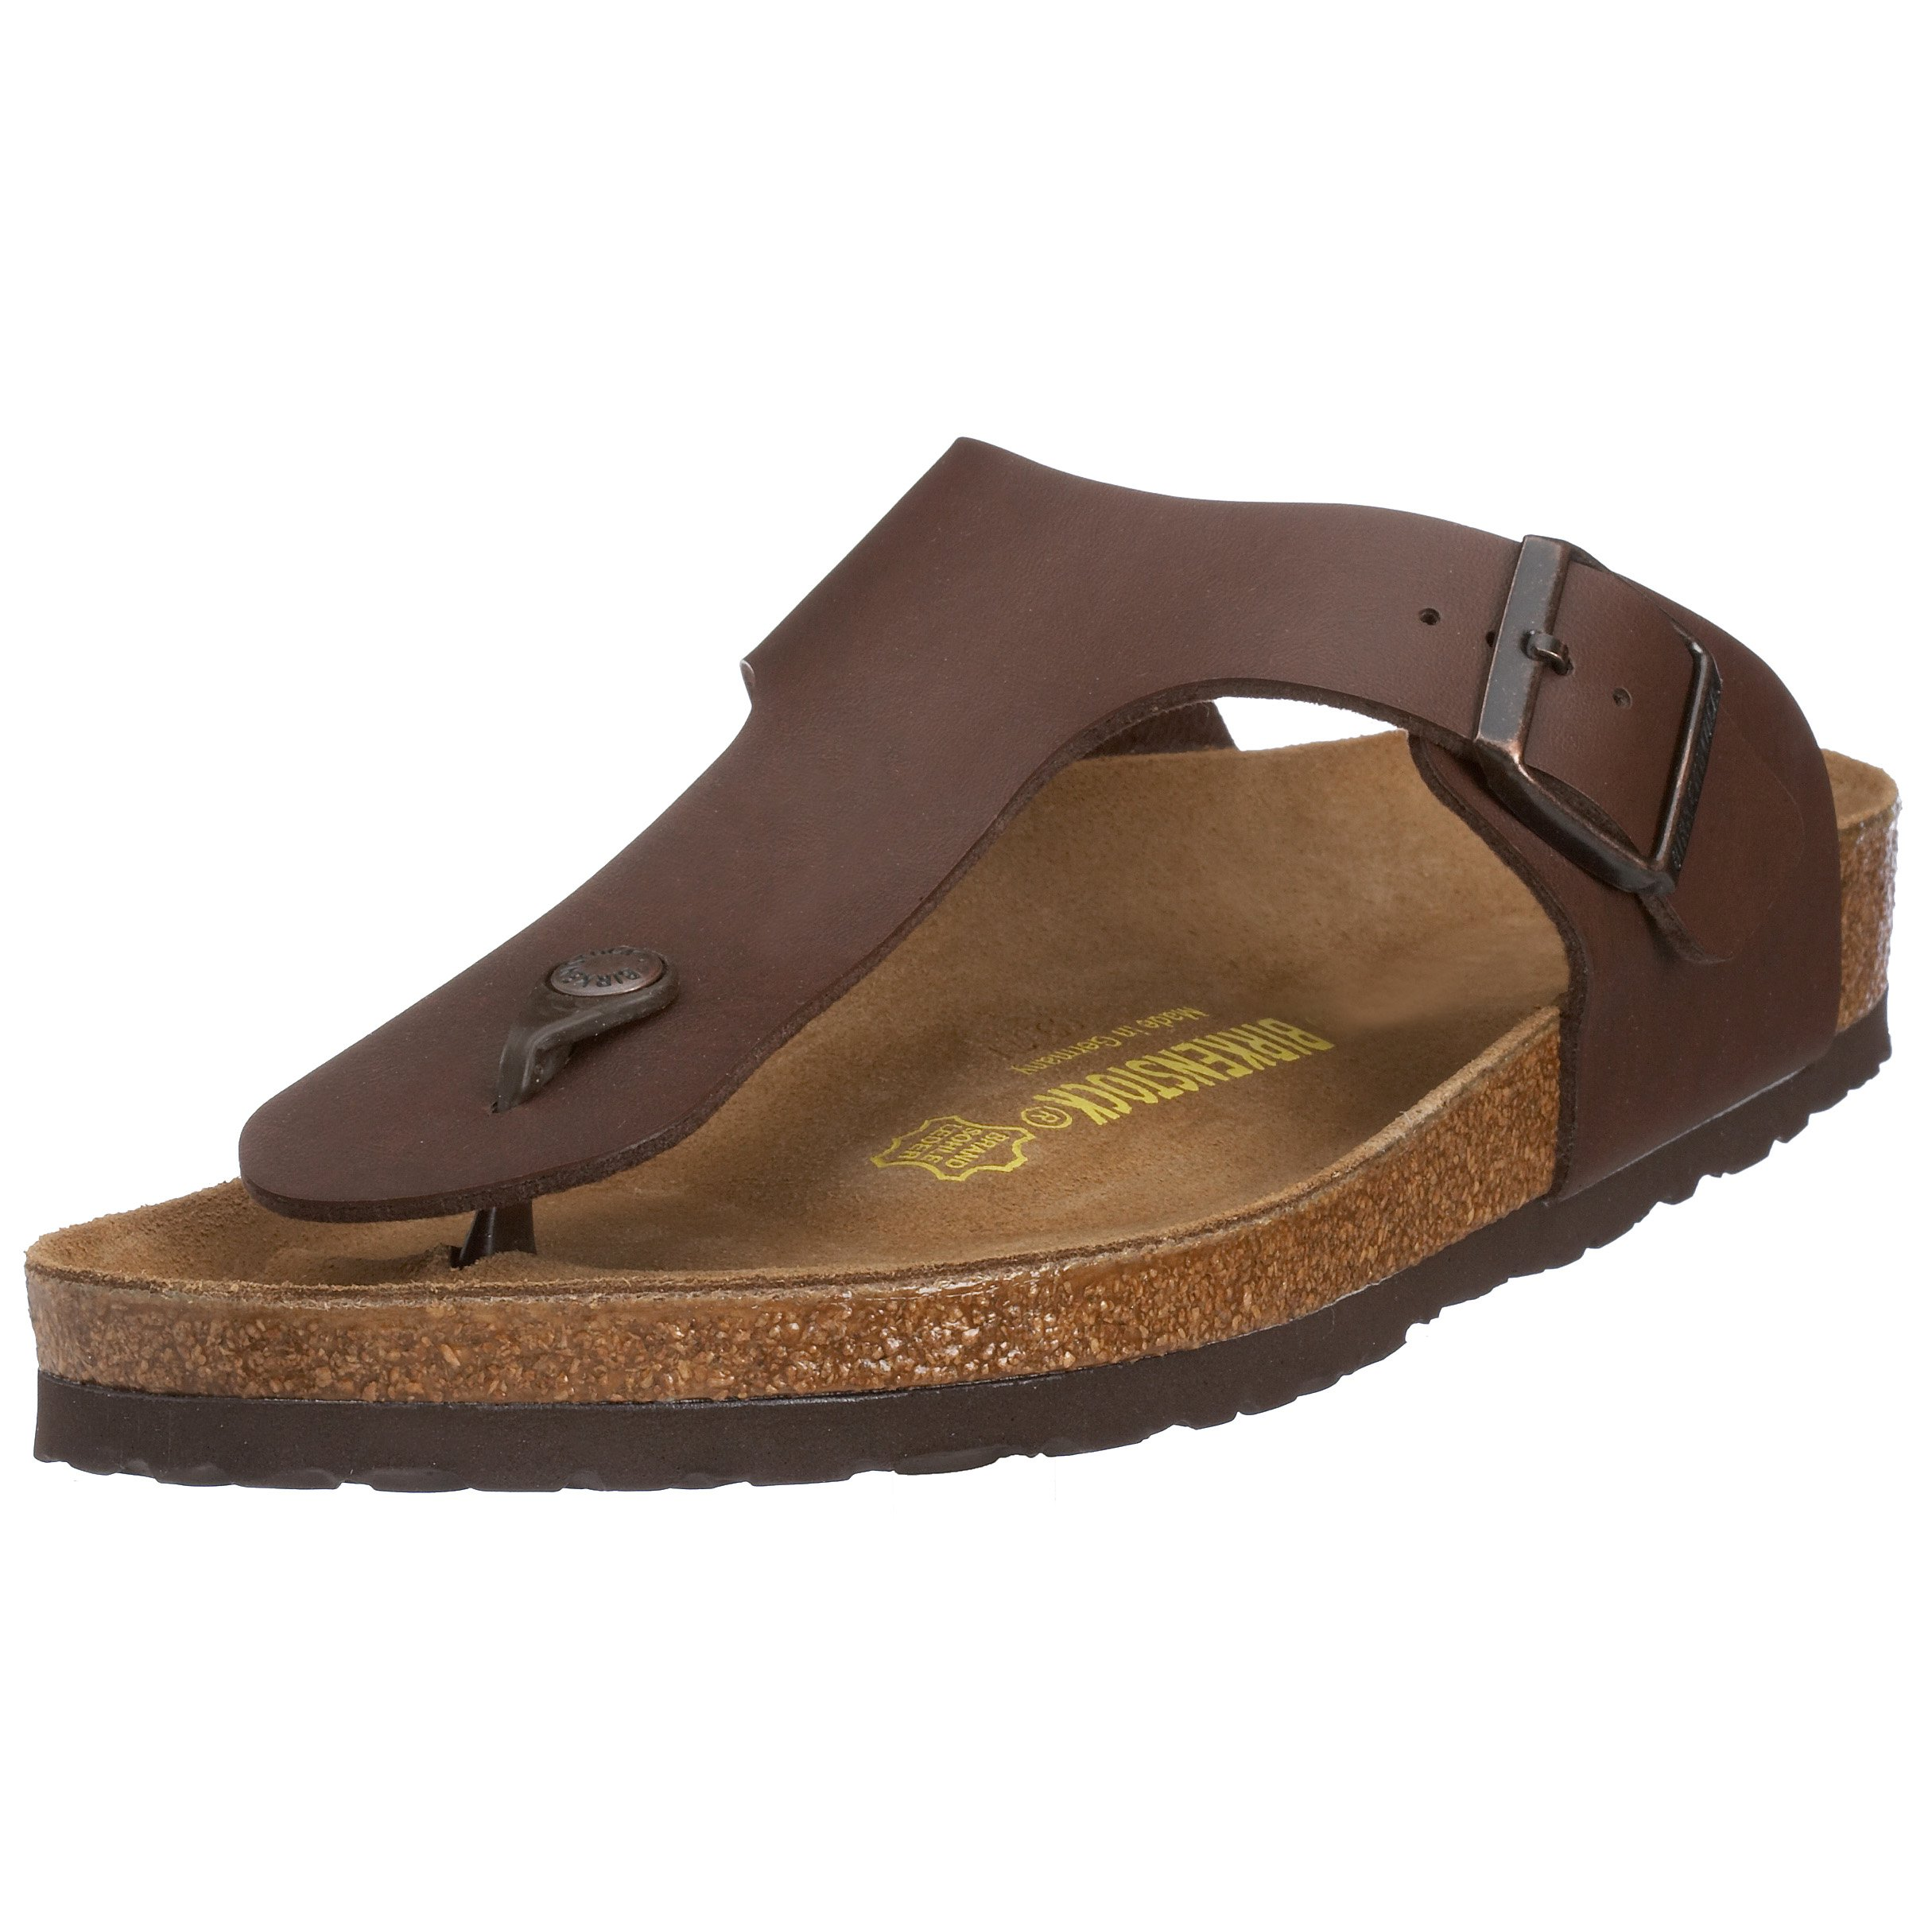 3b16d8583845 Galleon - Birkenstock Women´s Ramses Dark Brown Birko Flor Sandals 35  (normal) R 044701